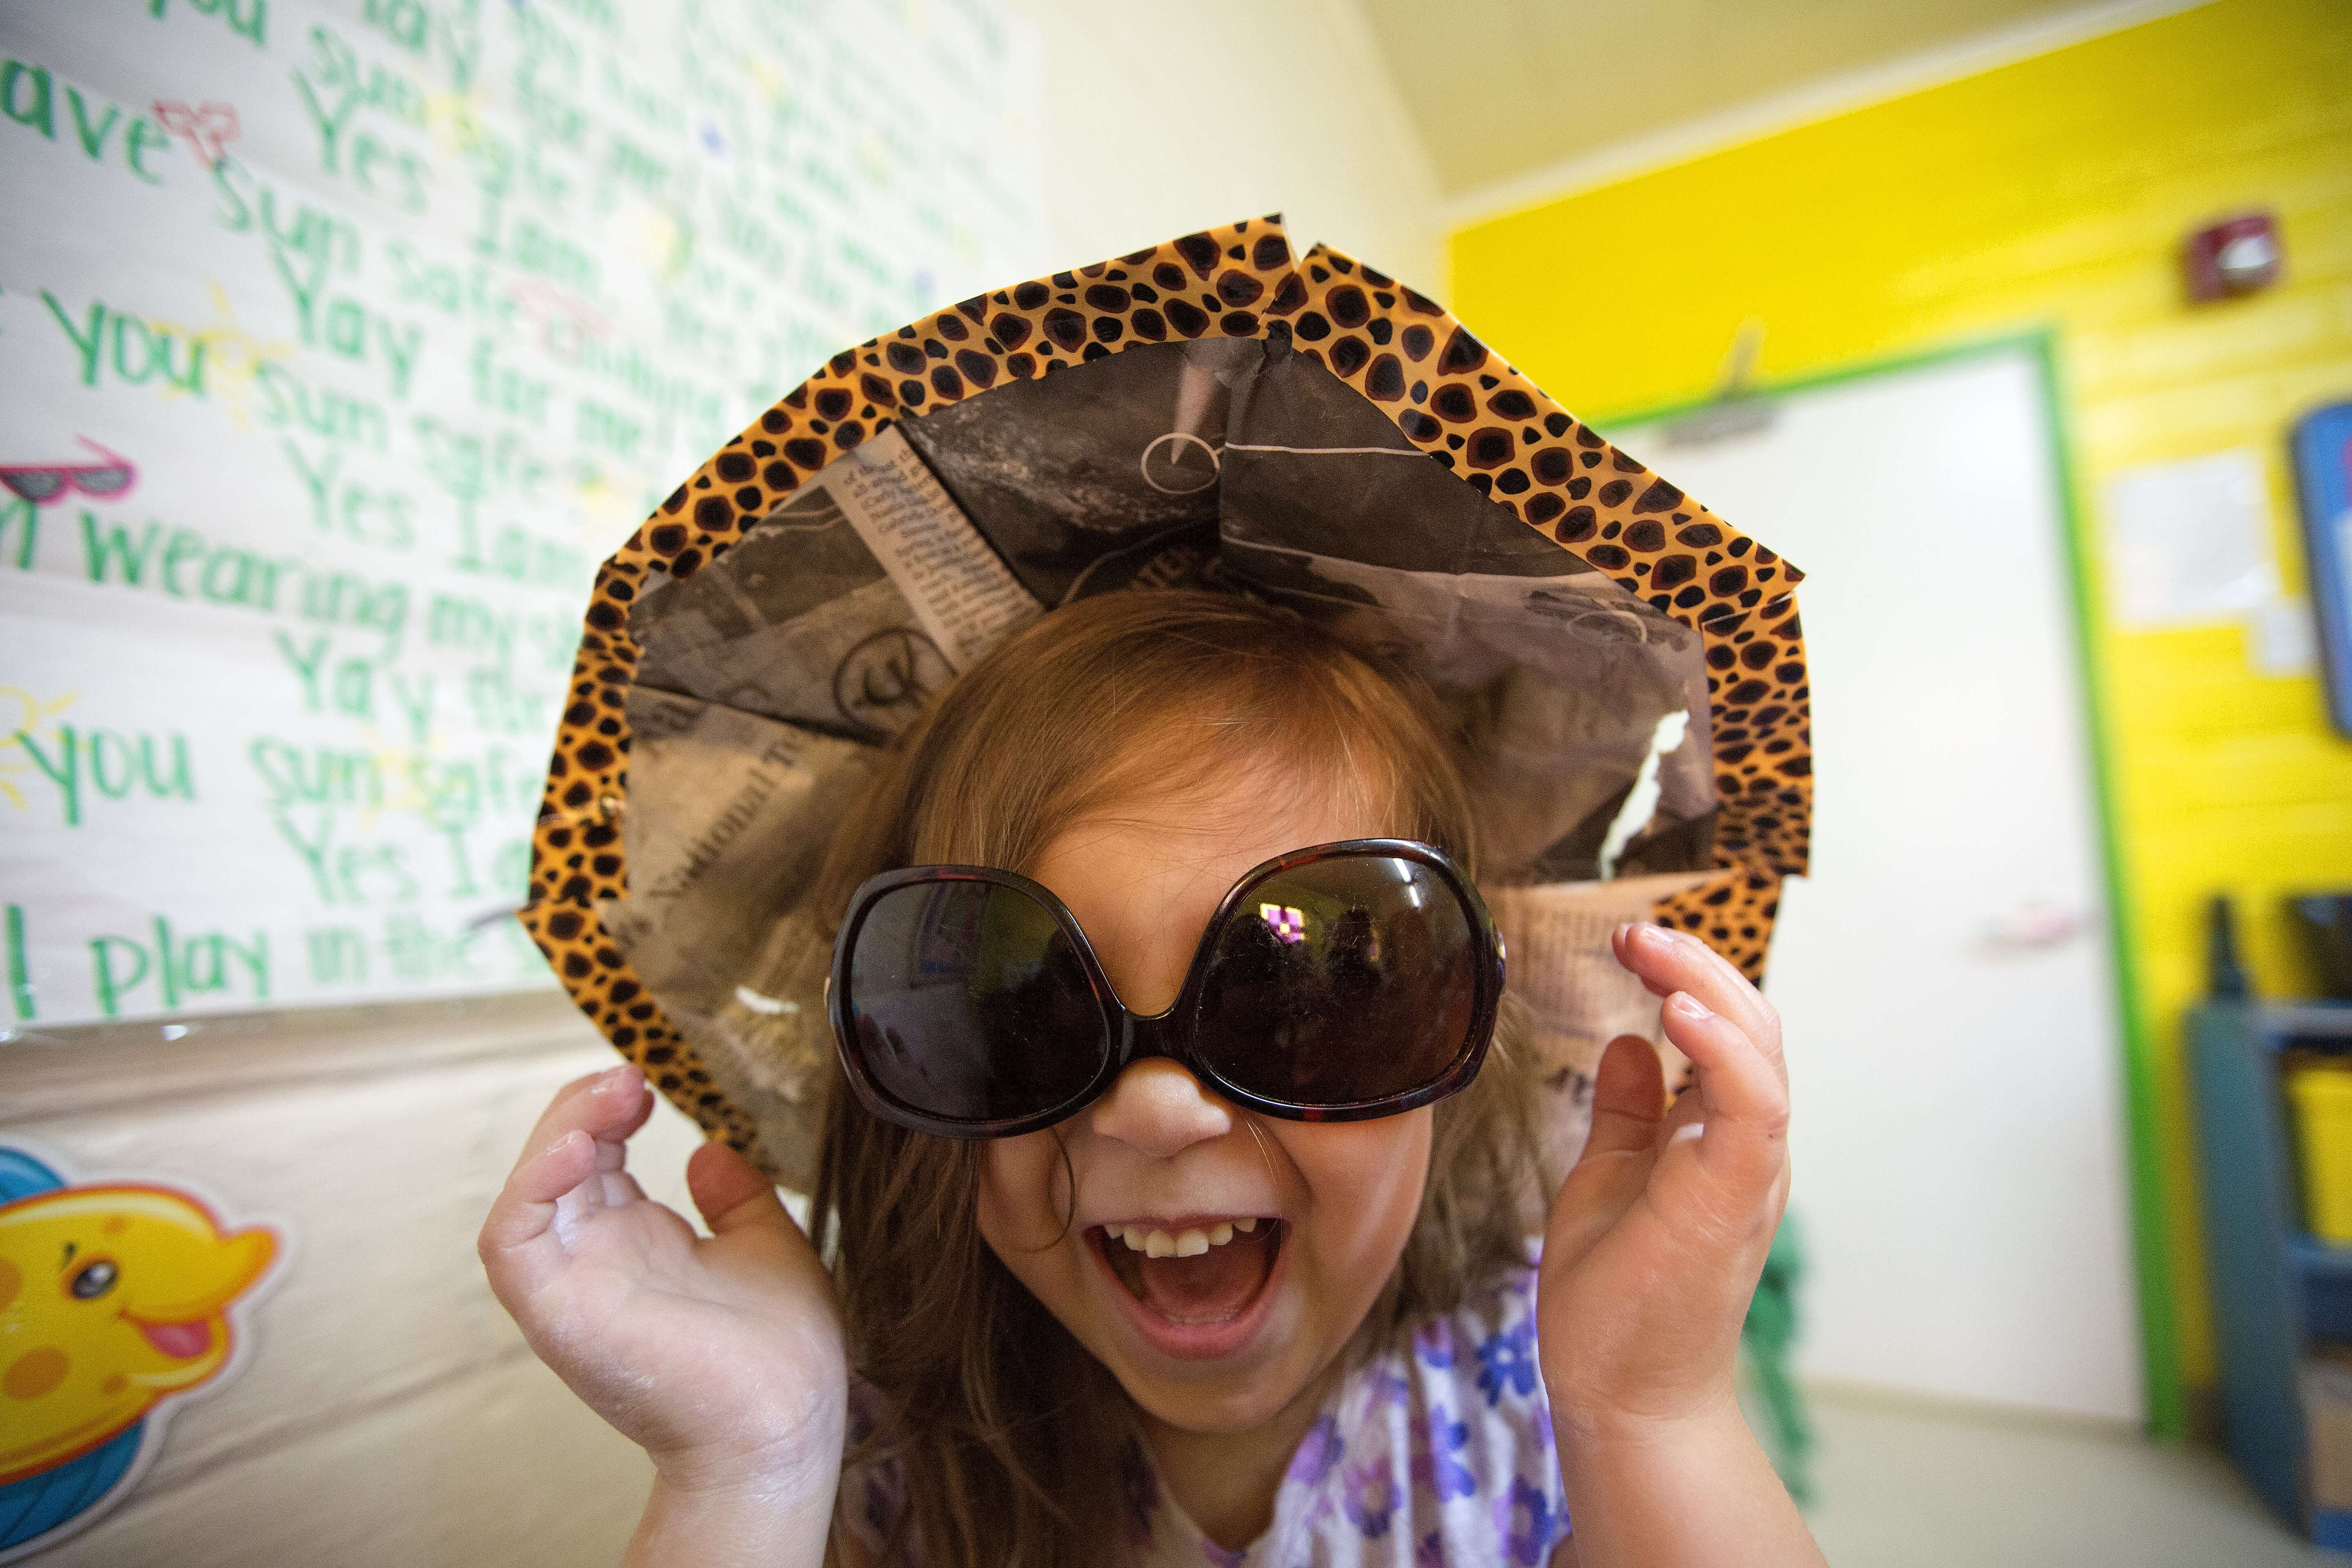 The Ray and the Sunbeatables curriculum teaches children that wearing sunglasses and hats will protect them from the sun.